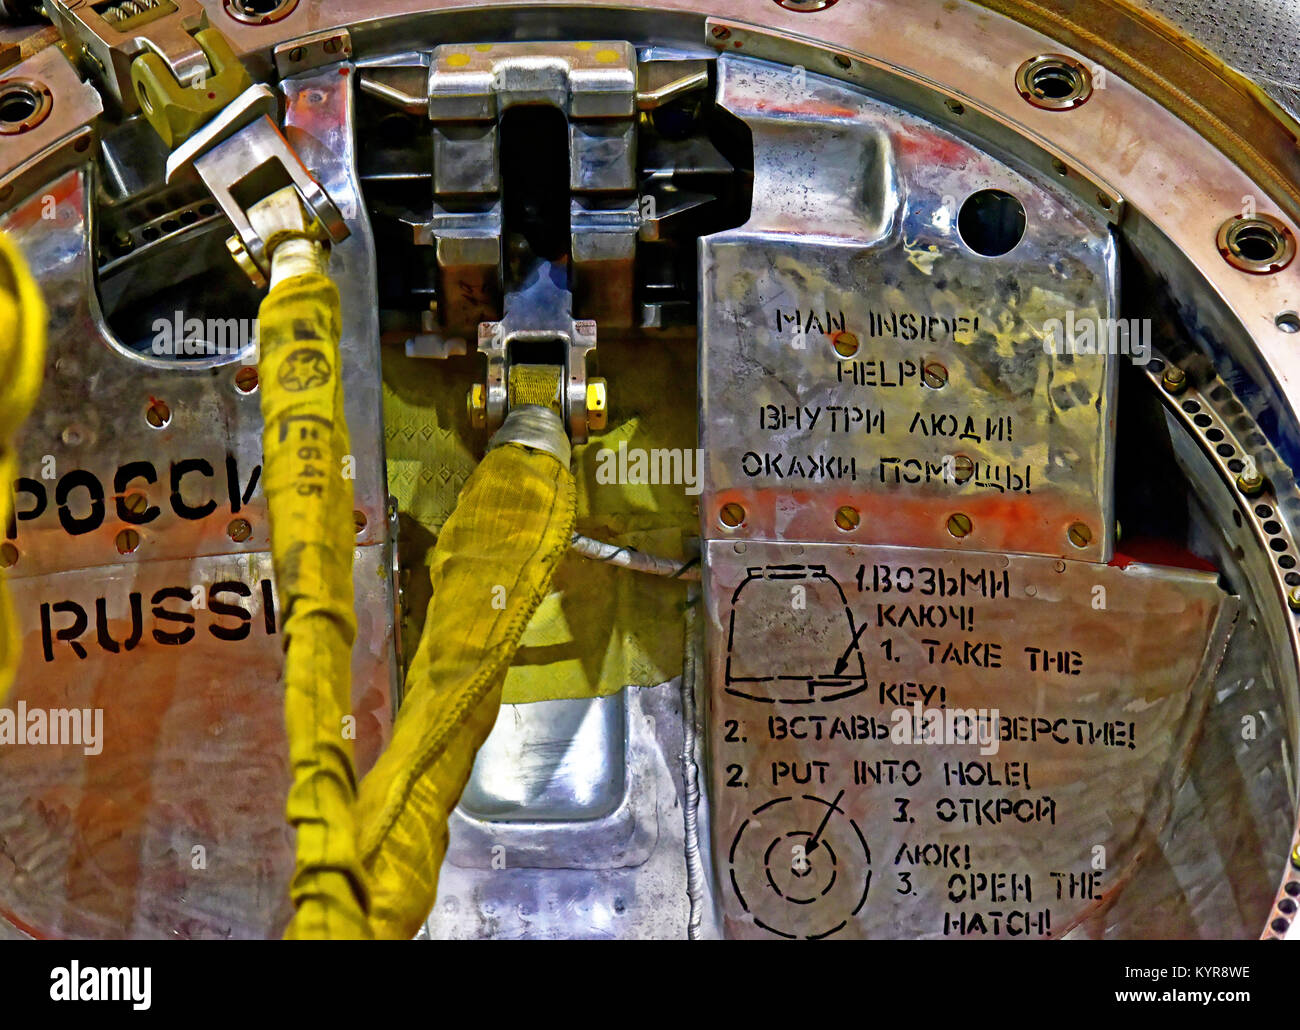 Tim Peakes Soyuz Space Capsule parachute and exit details in Russian Shildon Railway Museum - Stock Image